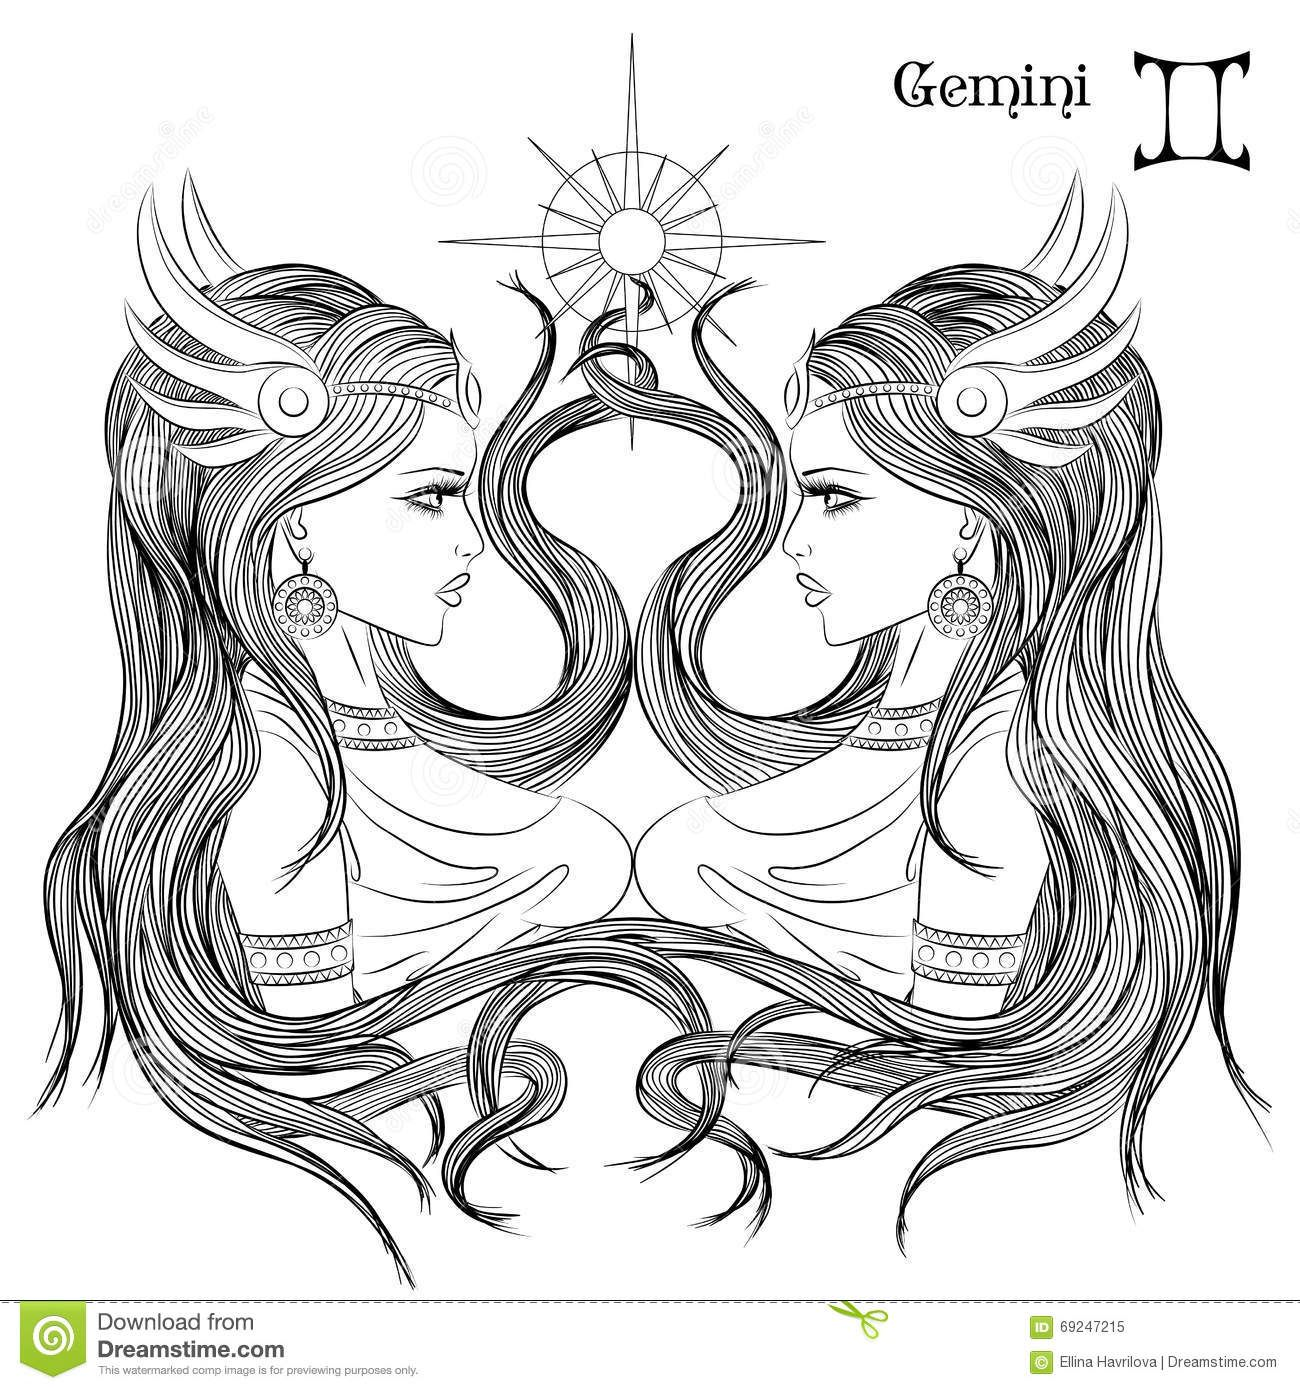 gemini zodiac coloring pages image result for free adult colouringpeople coloring zodiac coloring pages gemini